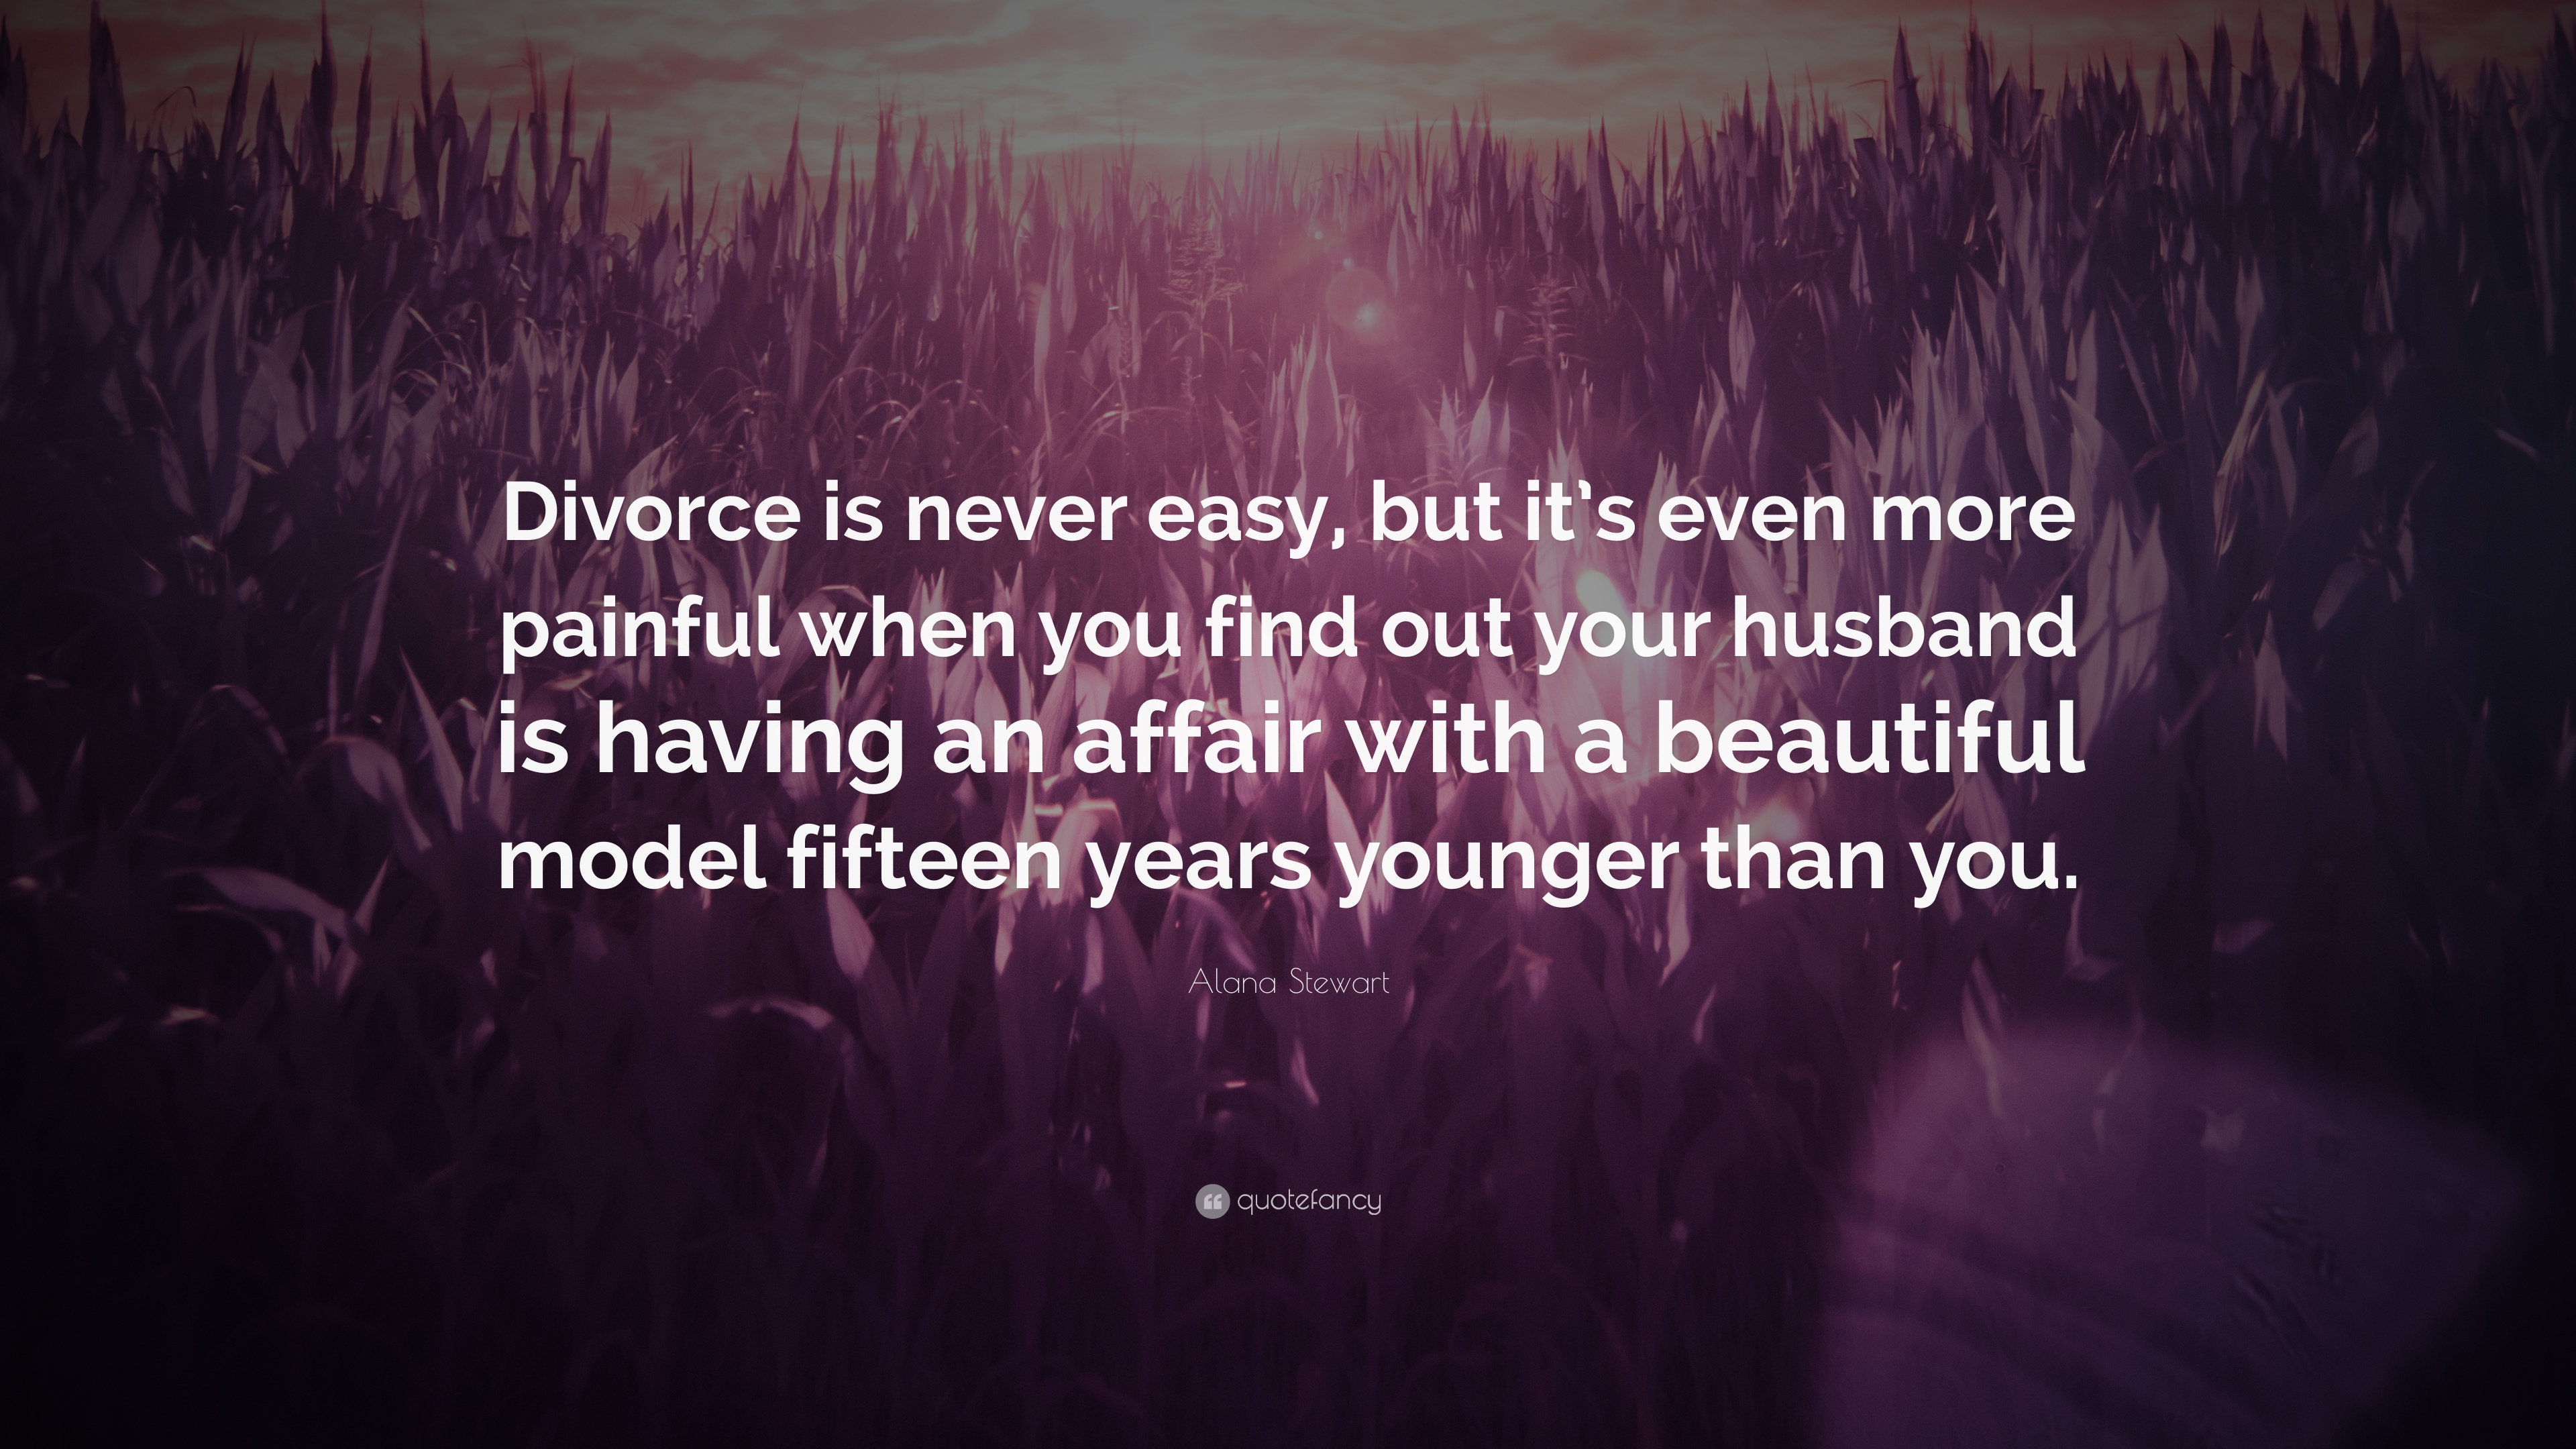 7 reasons why a divorce is beautiful